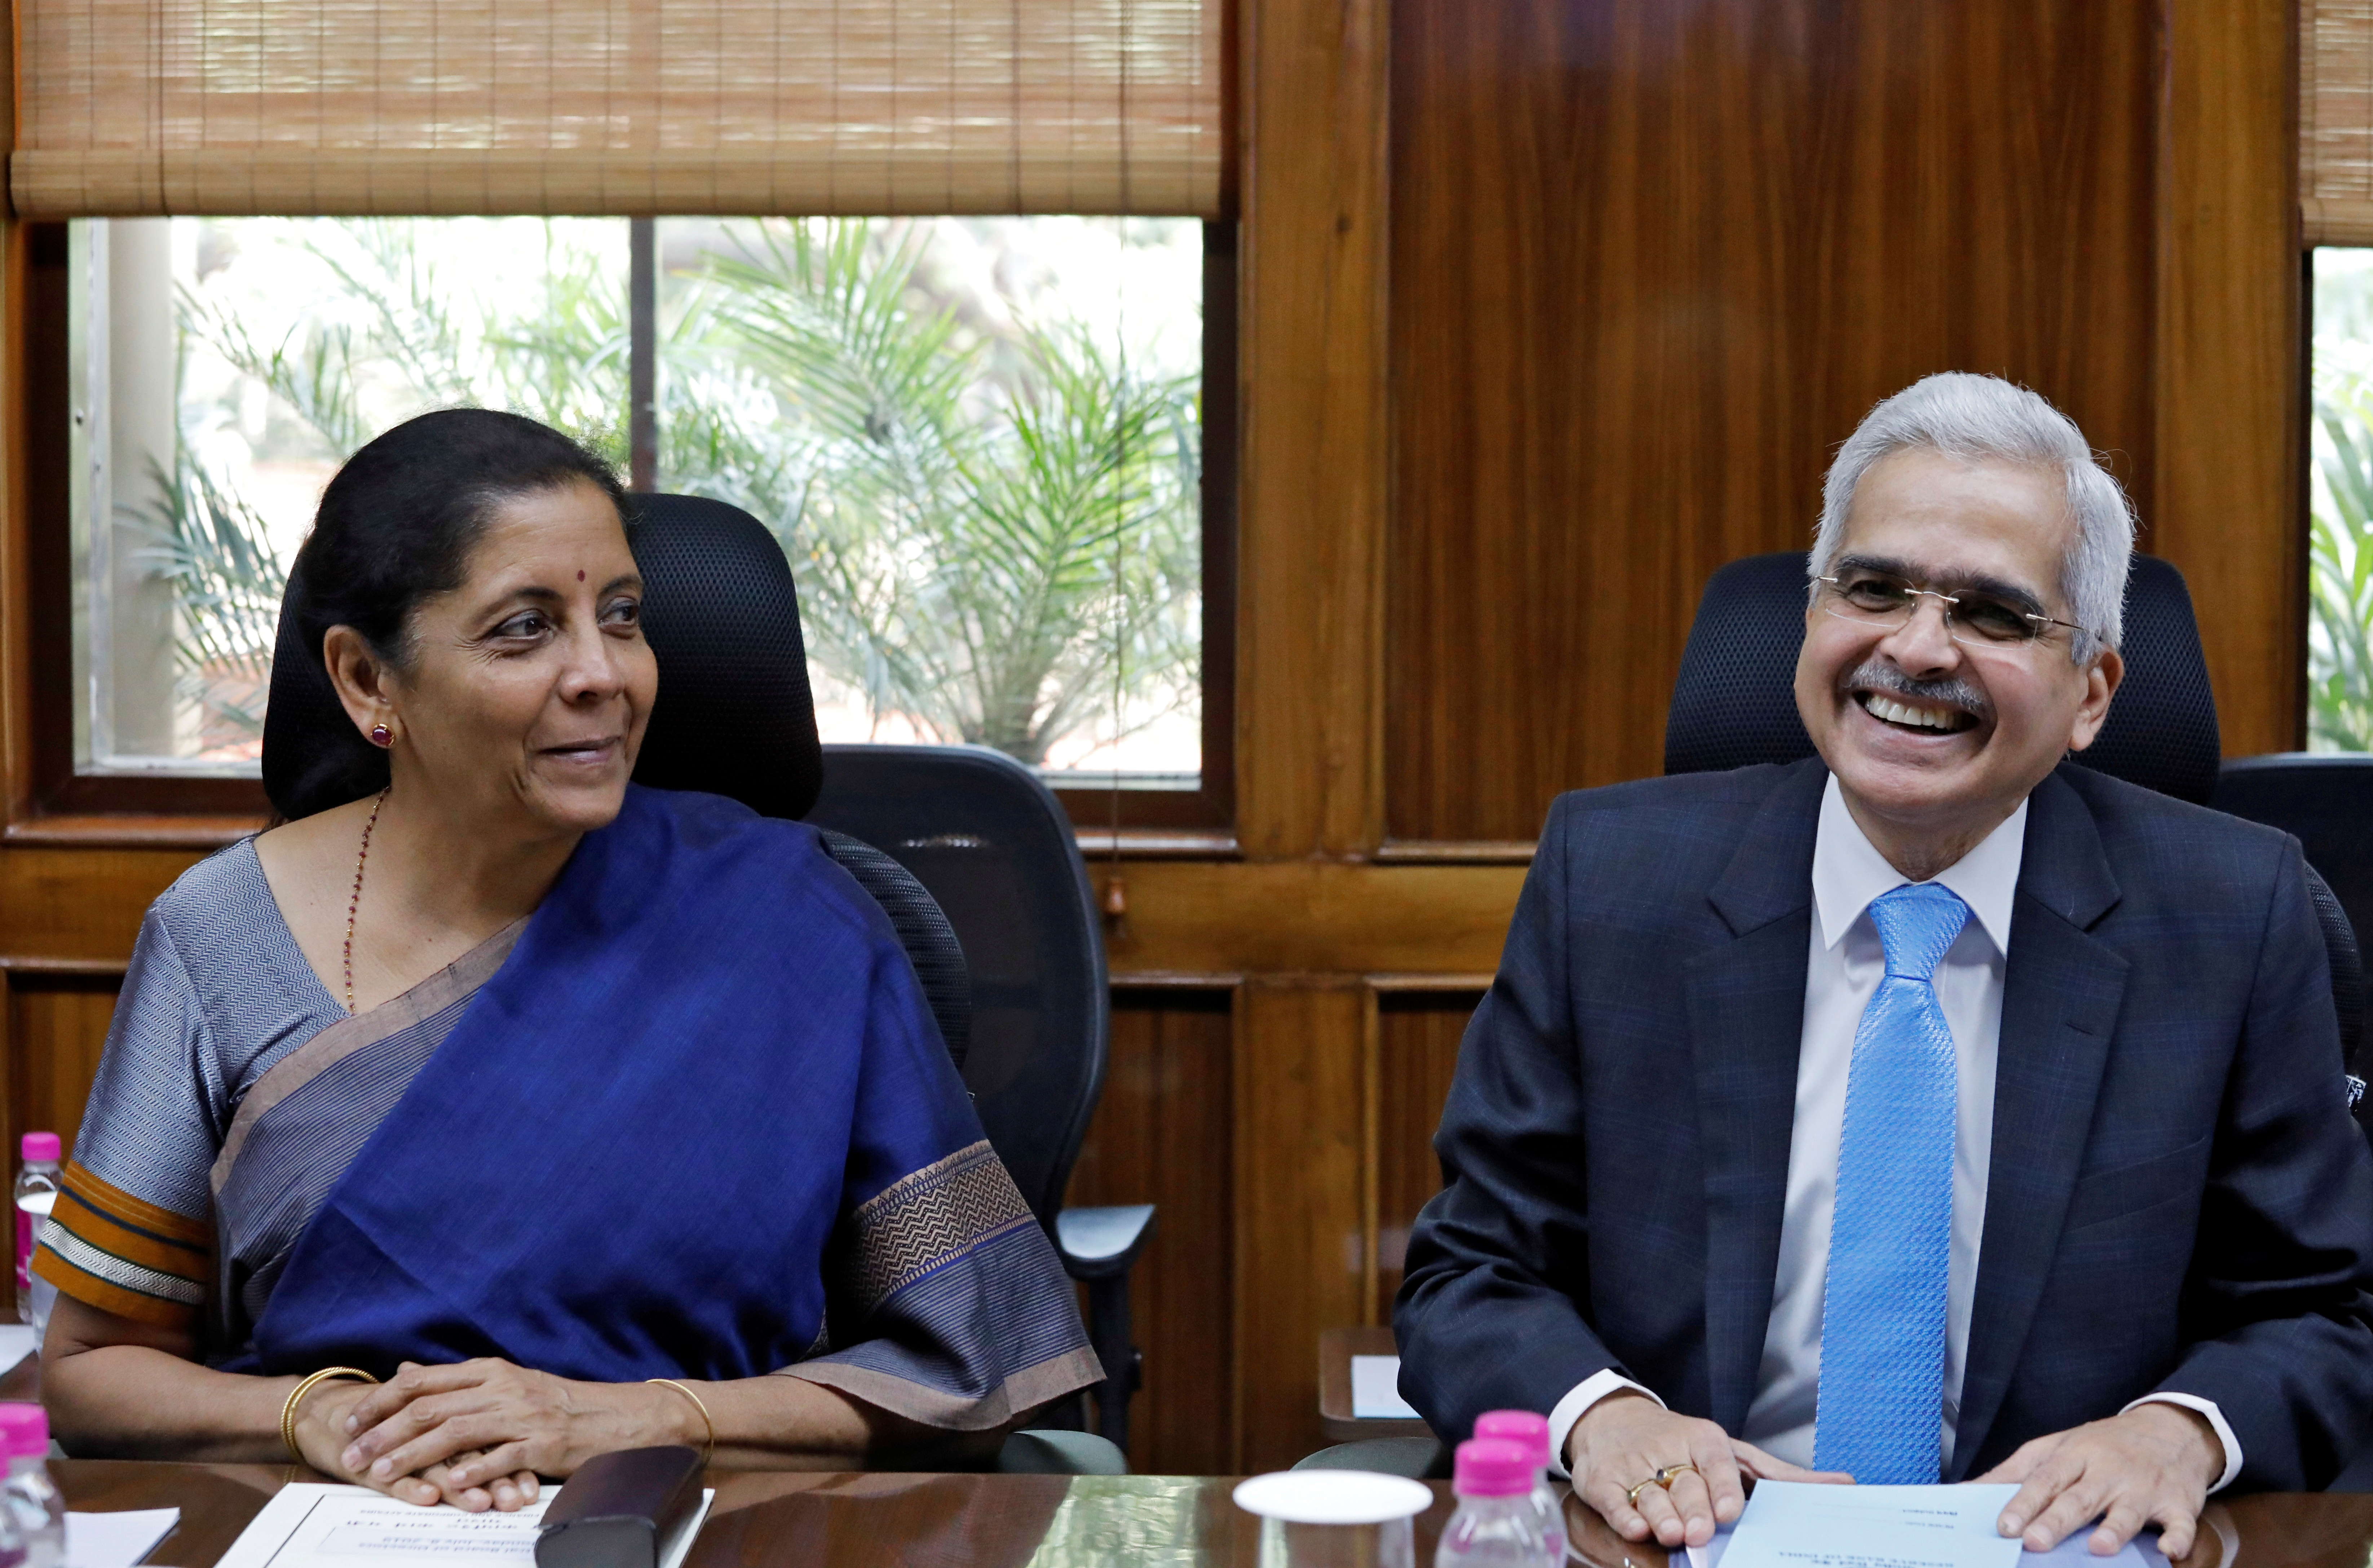 India's Finance Minister Nirmala Sitharaman and the Reserve Bank of India (RBI) Governor Shaktikanta Das attend the RBI's central board meeting in New Delhi, India July 8, 2019. REUTERS/Anushree Fadnavis